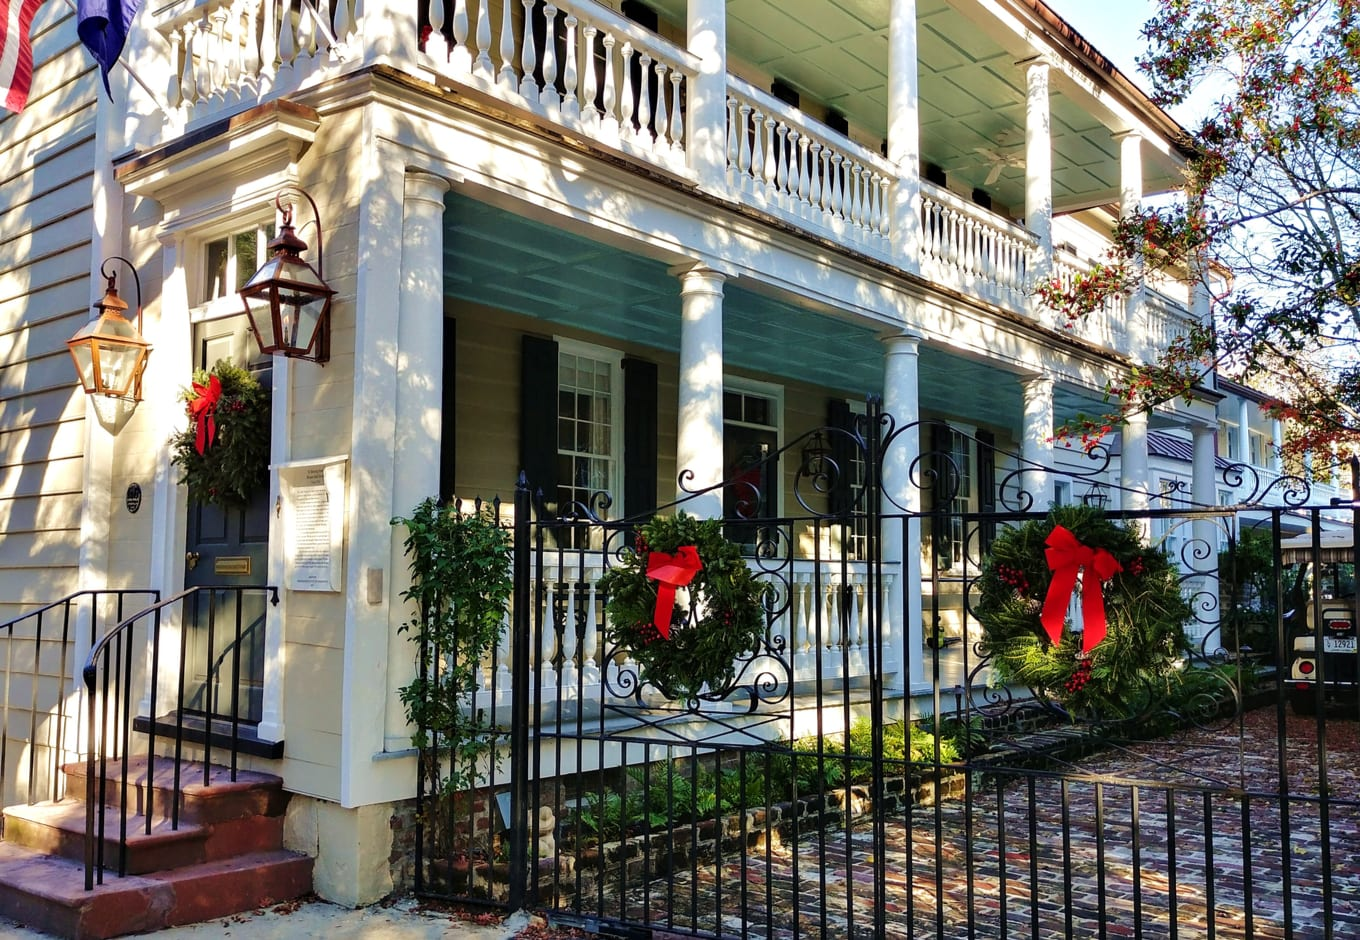 A thome decorated for Christmas in Charleston, SC.